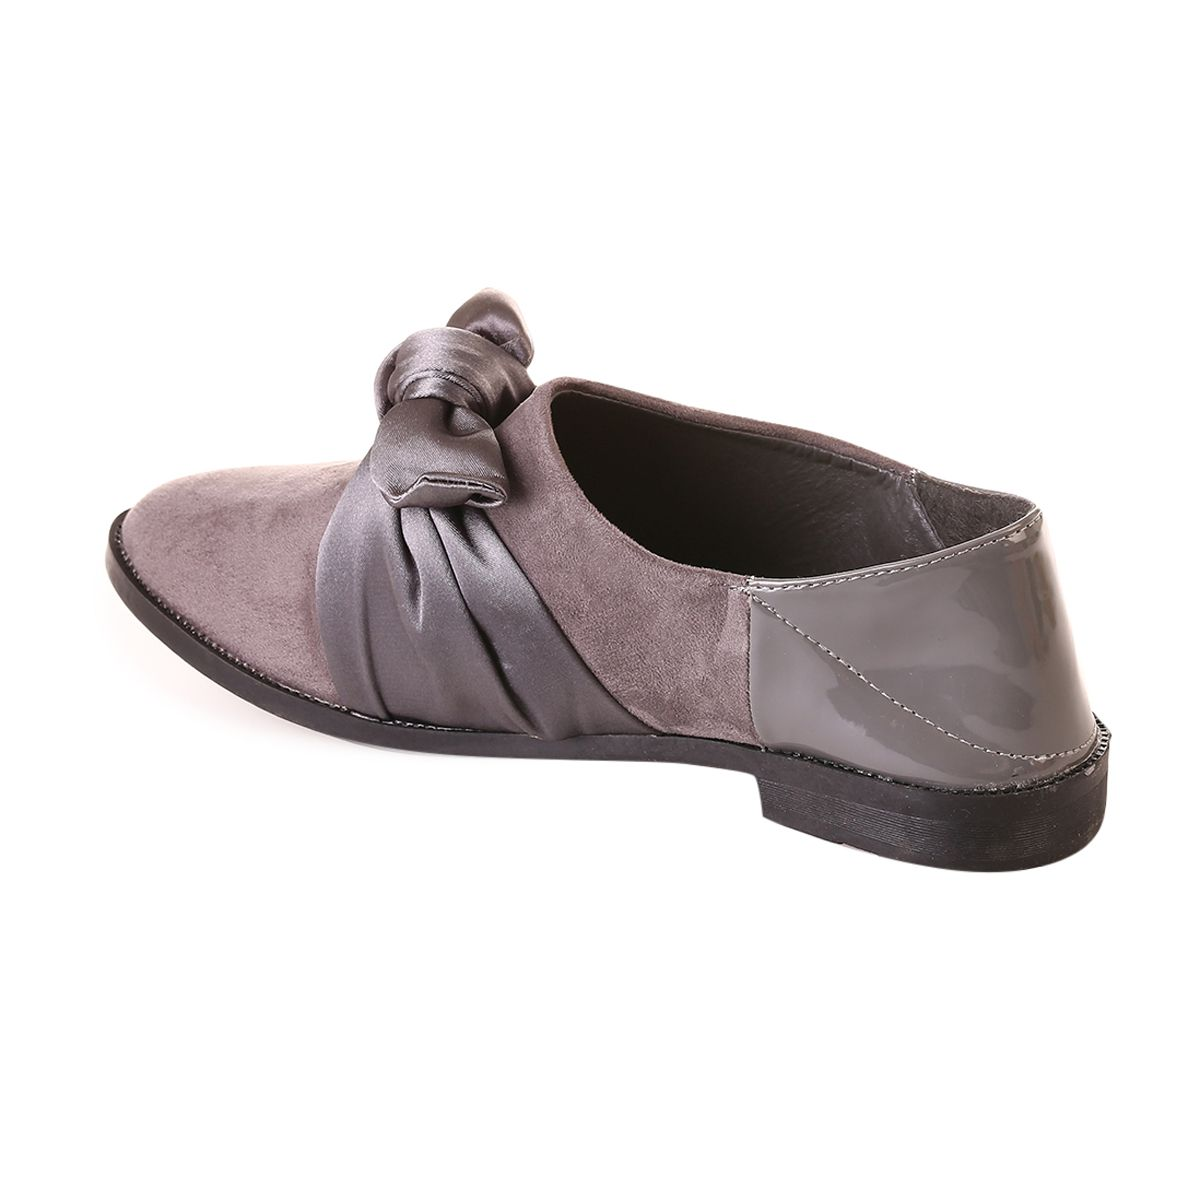 Derbies gris à noeud satin